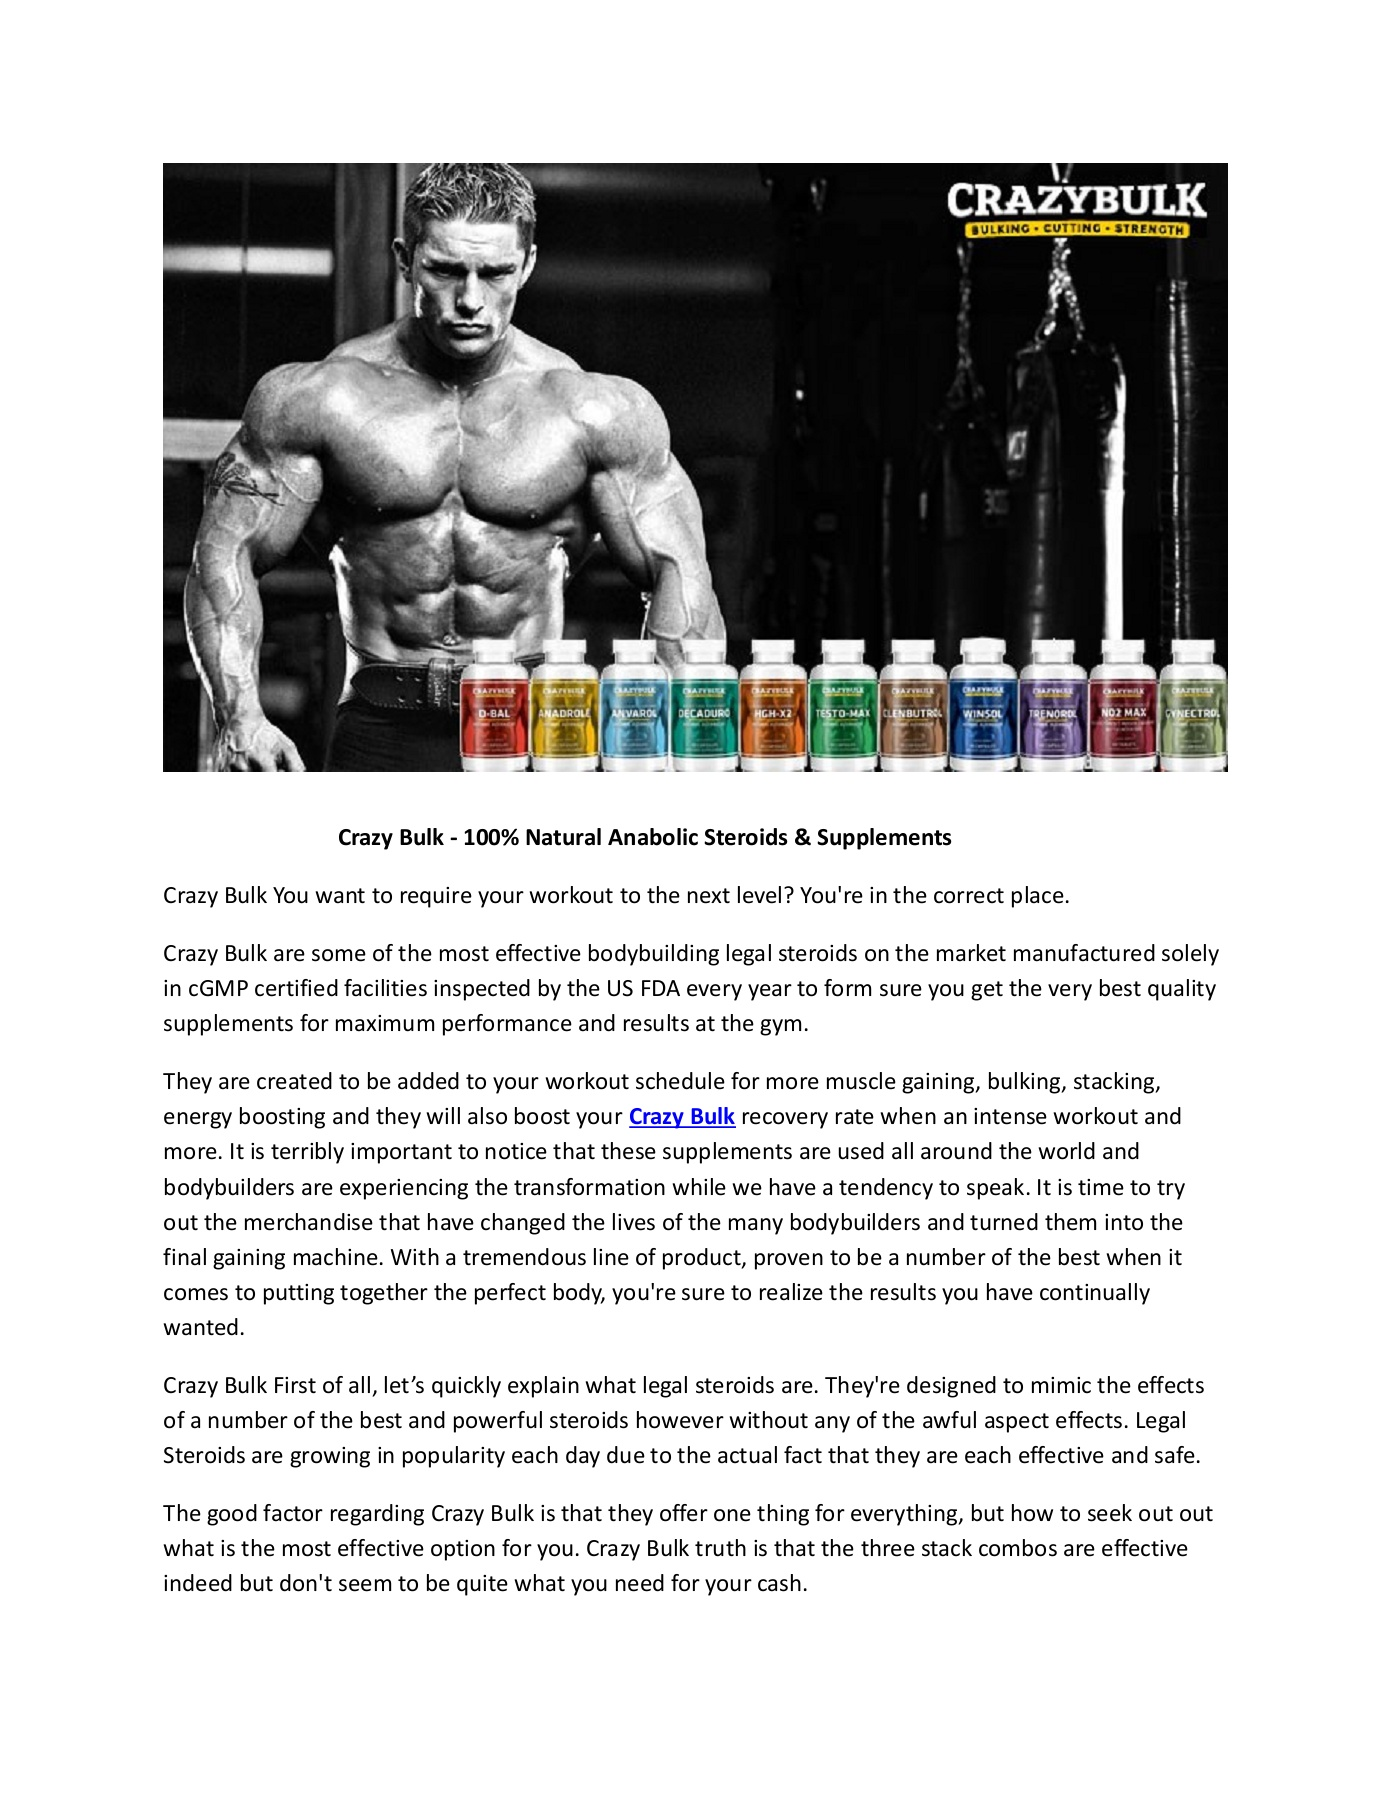 Crazy Bulk - Fast Muscle Gain With Safe Legal Steroids Pages